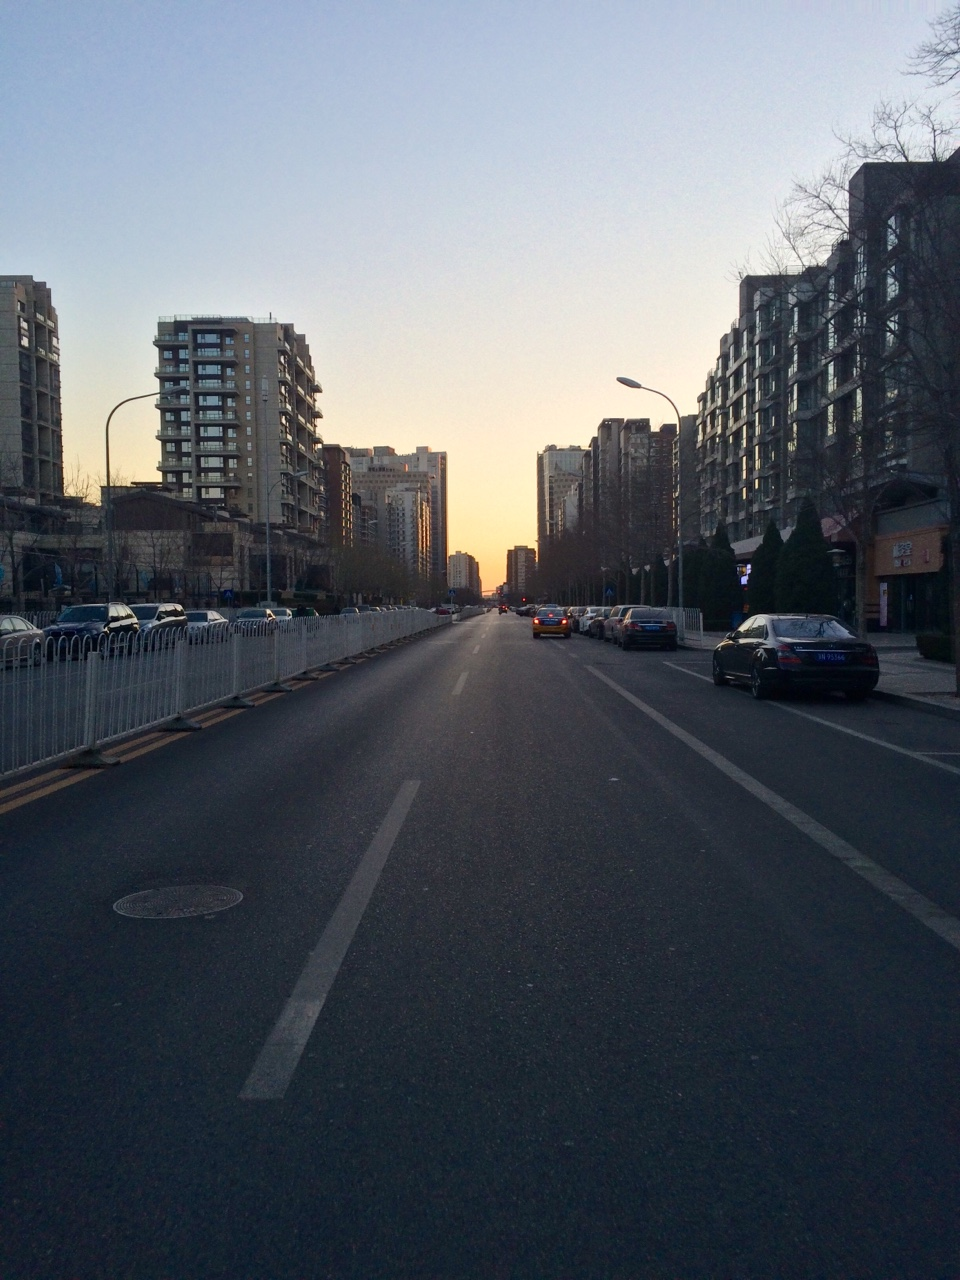 Despite the cold winter weather of December in Beijing, 7 in the morning is perfect for biking